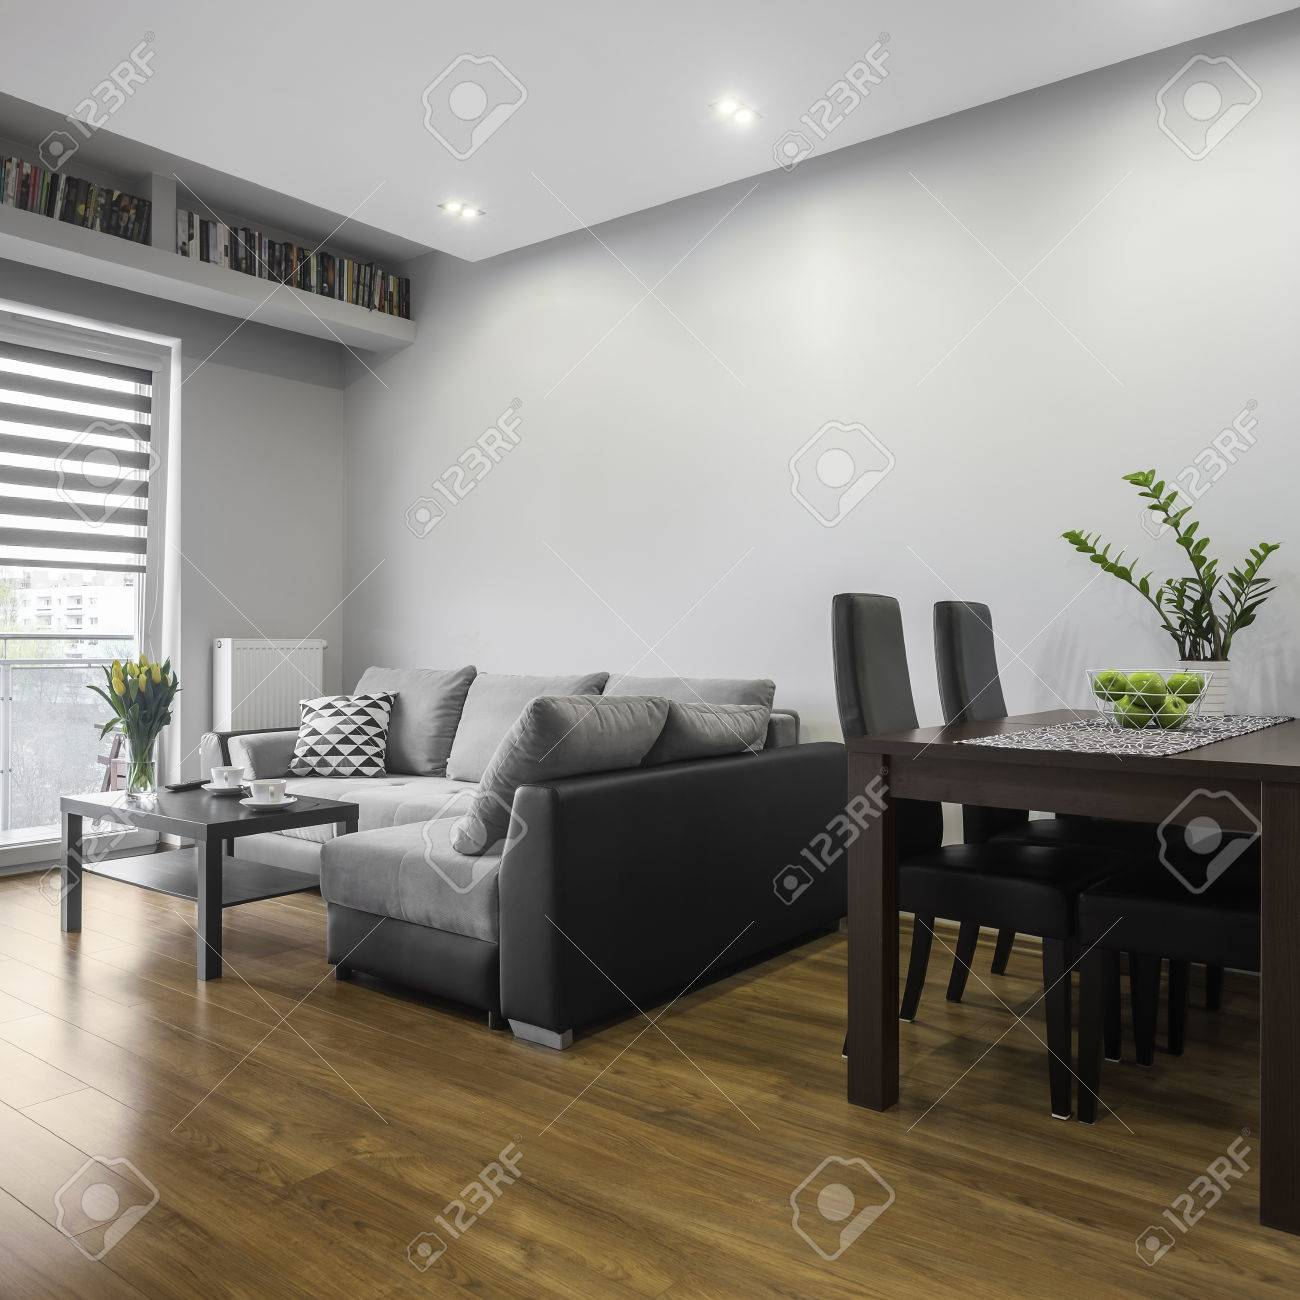 Simple Designed Modern Living Room With Dining Area Stock Photo ...